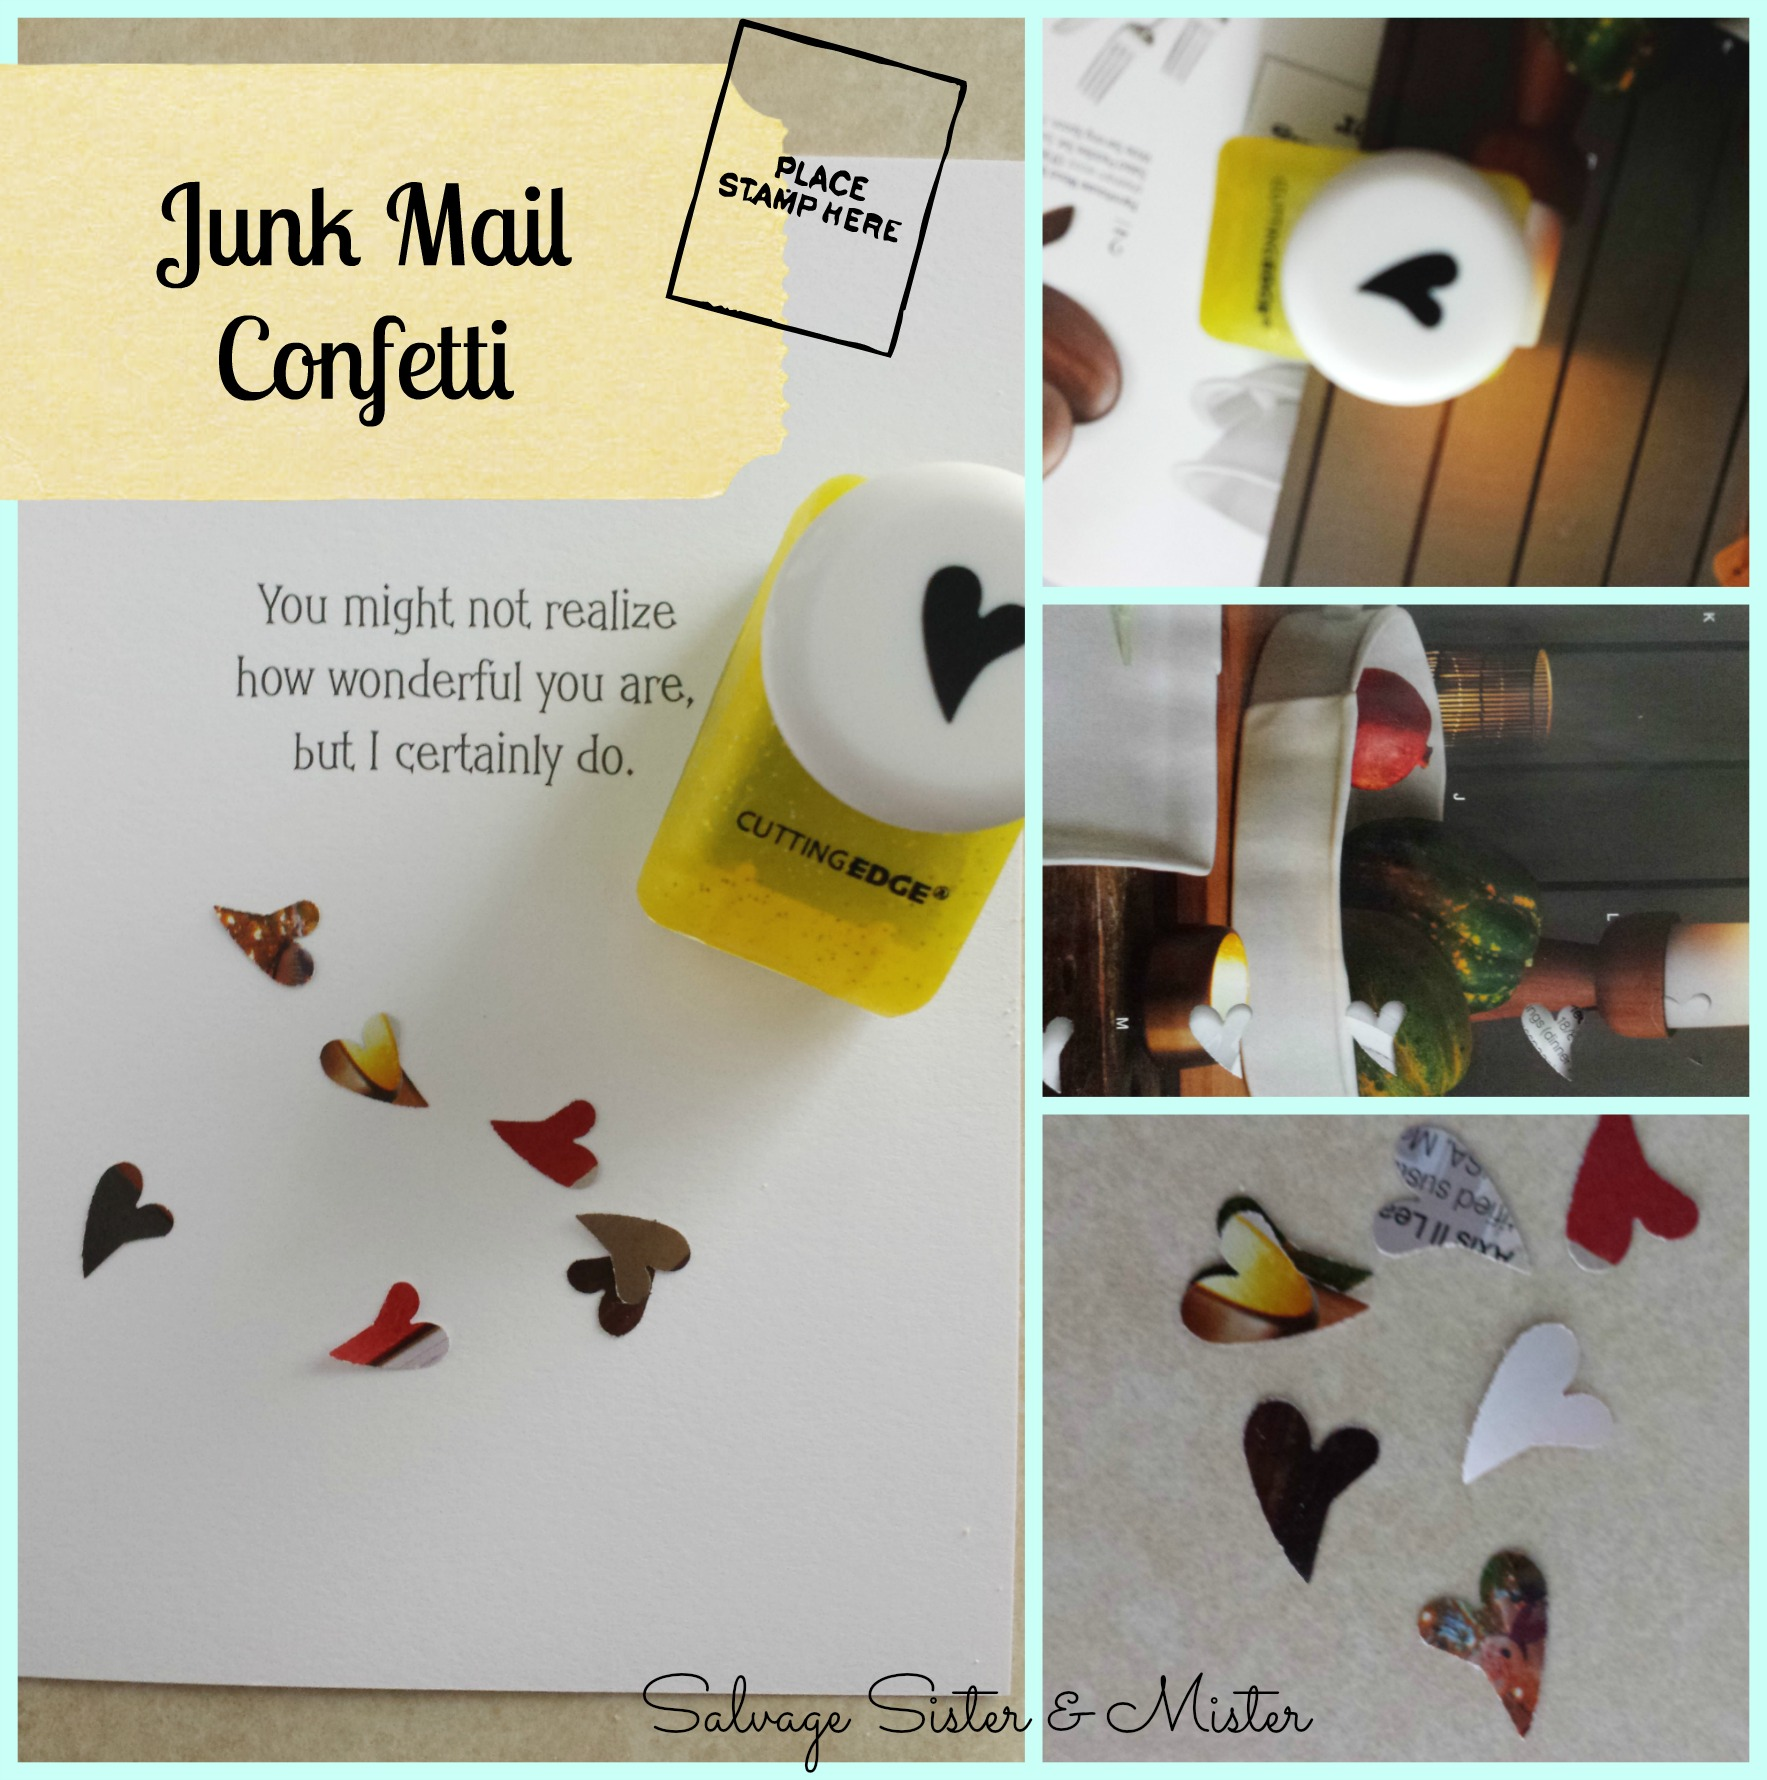 junk mail confetti- turn junk mail into something useful